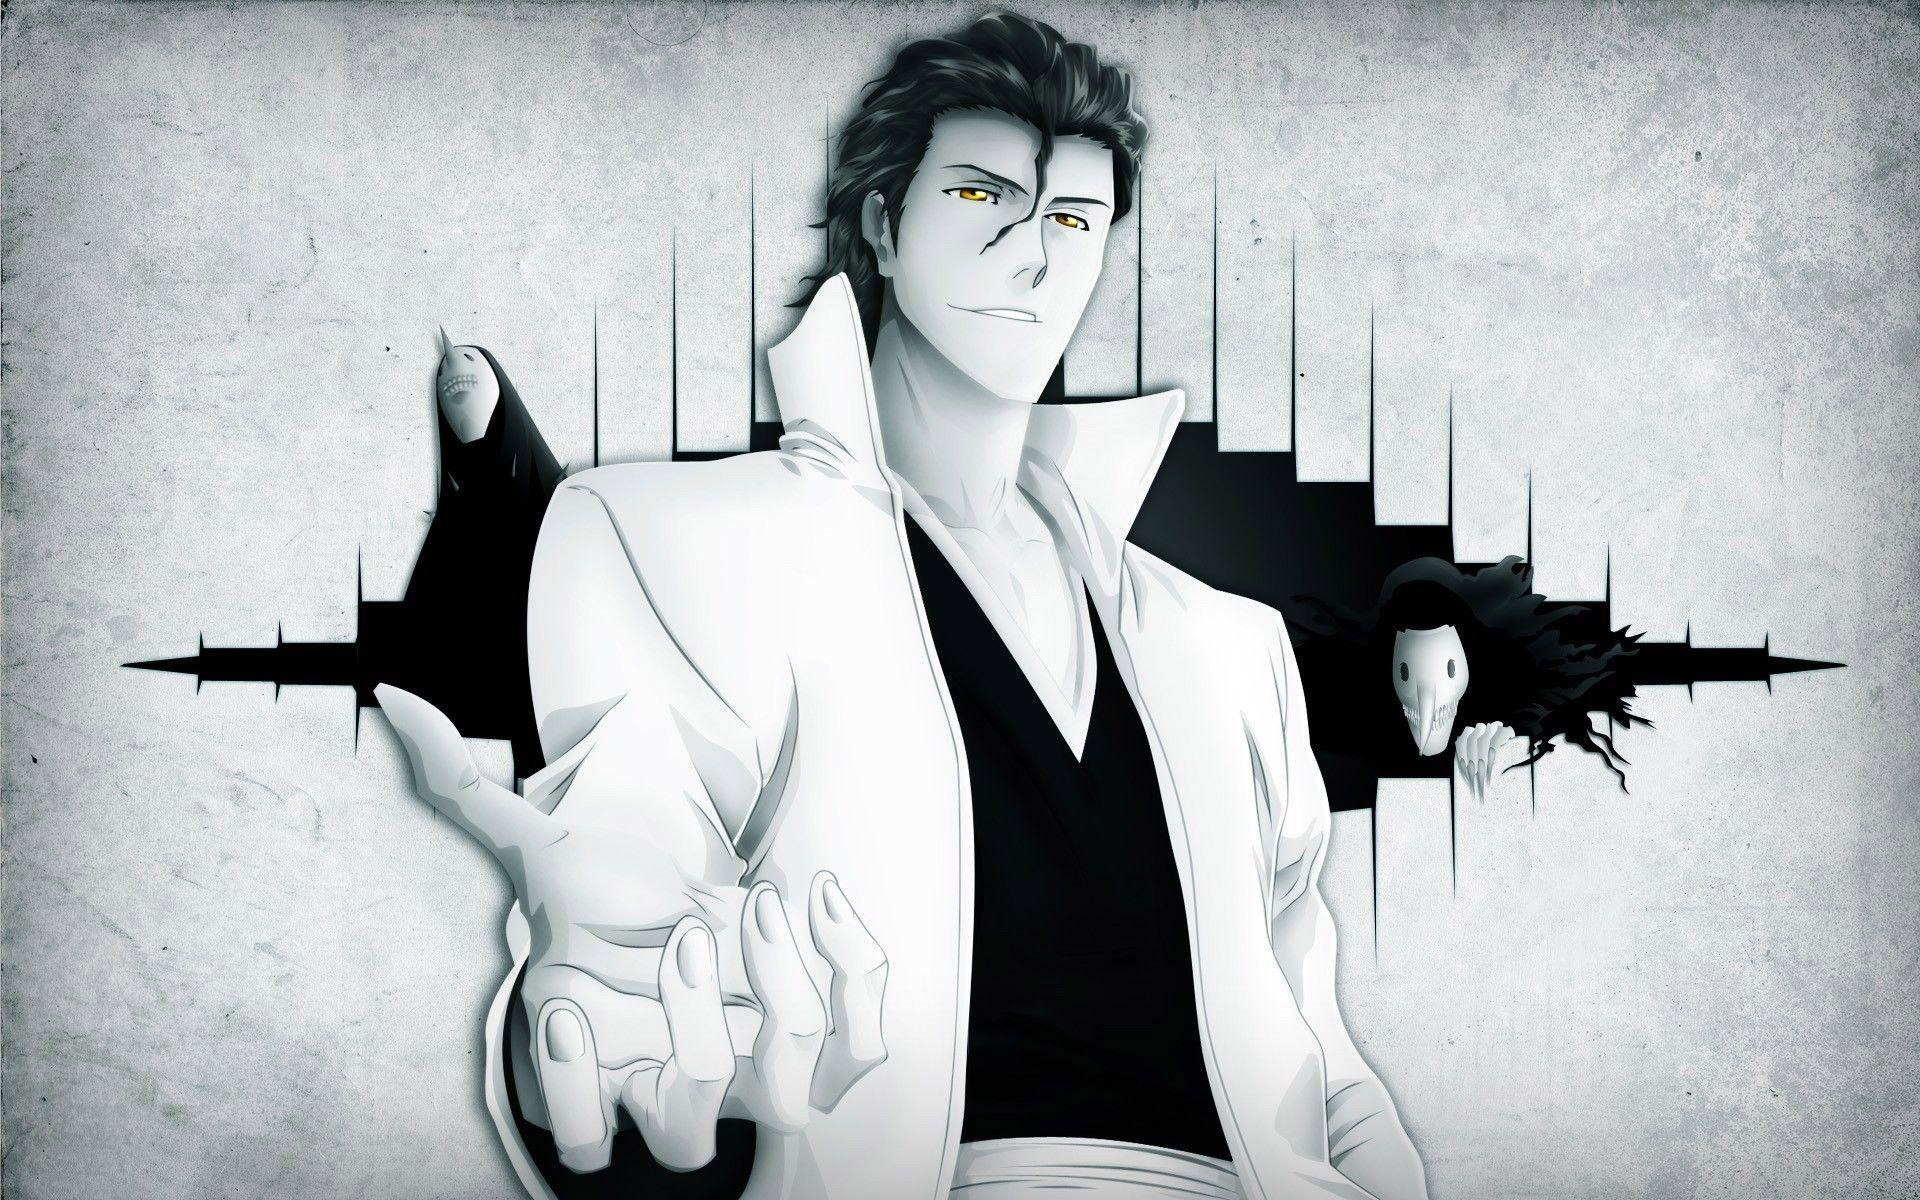 Aizen Wallpaper HD 67 images 1920x1200